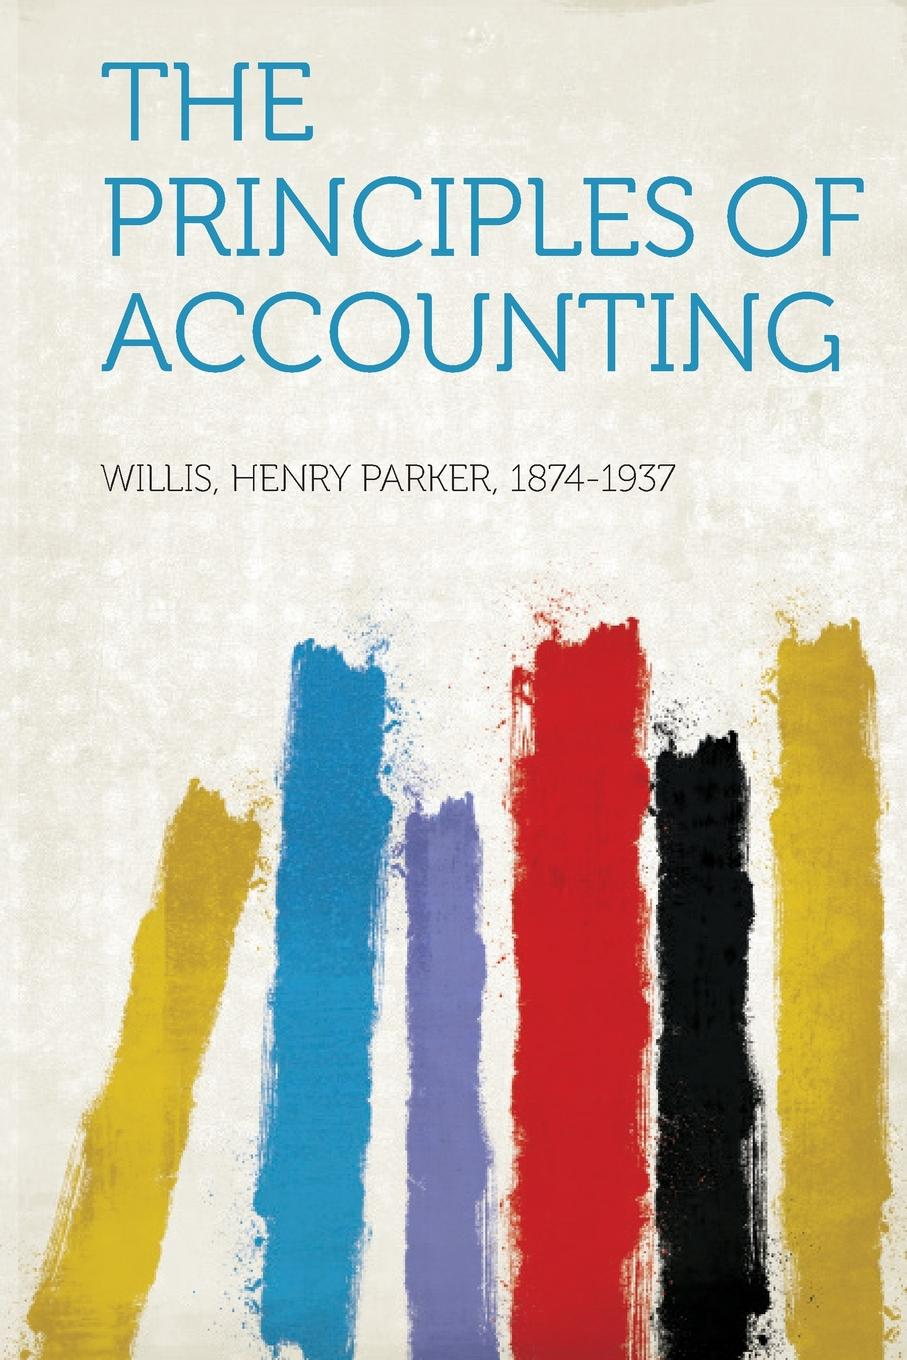 Willis Henry Parker 1874-1937 The Principles of Accounting